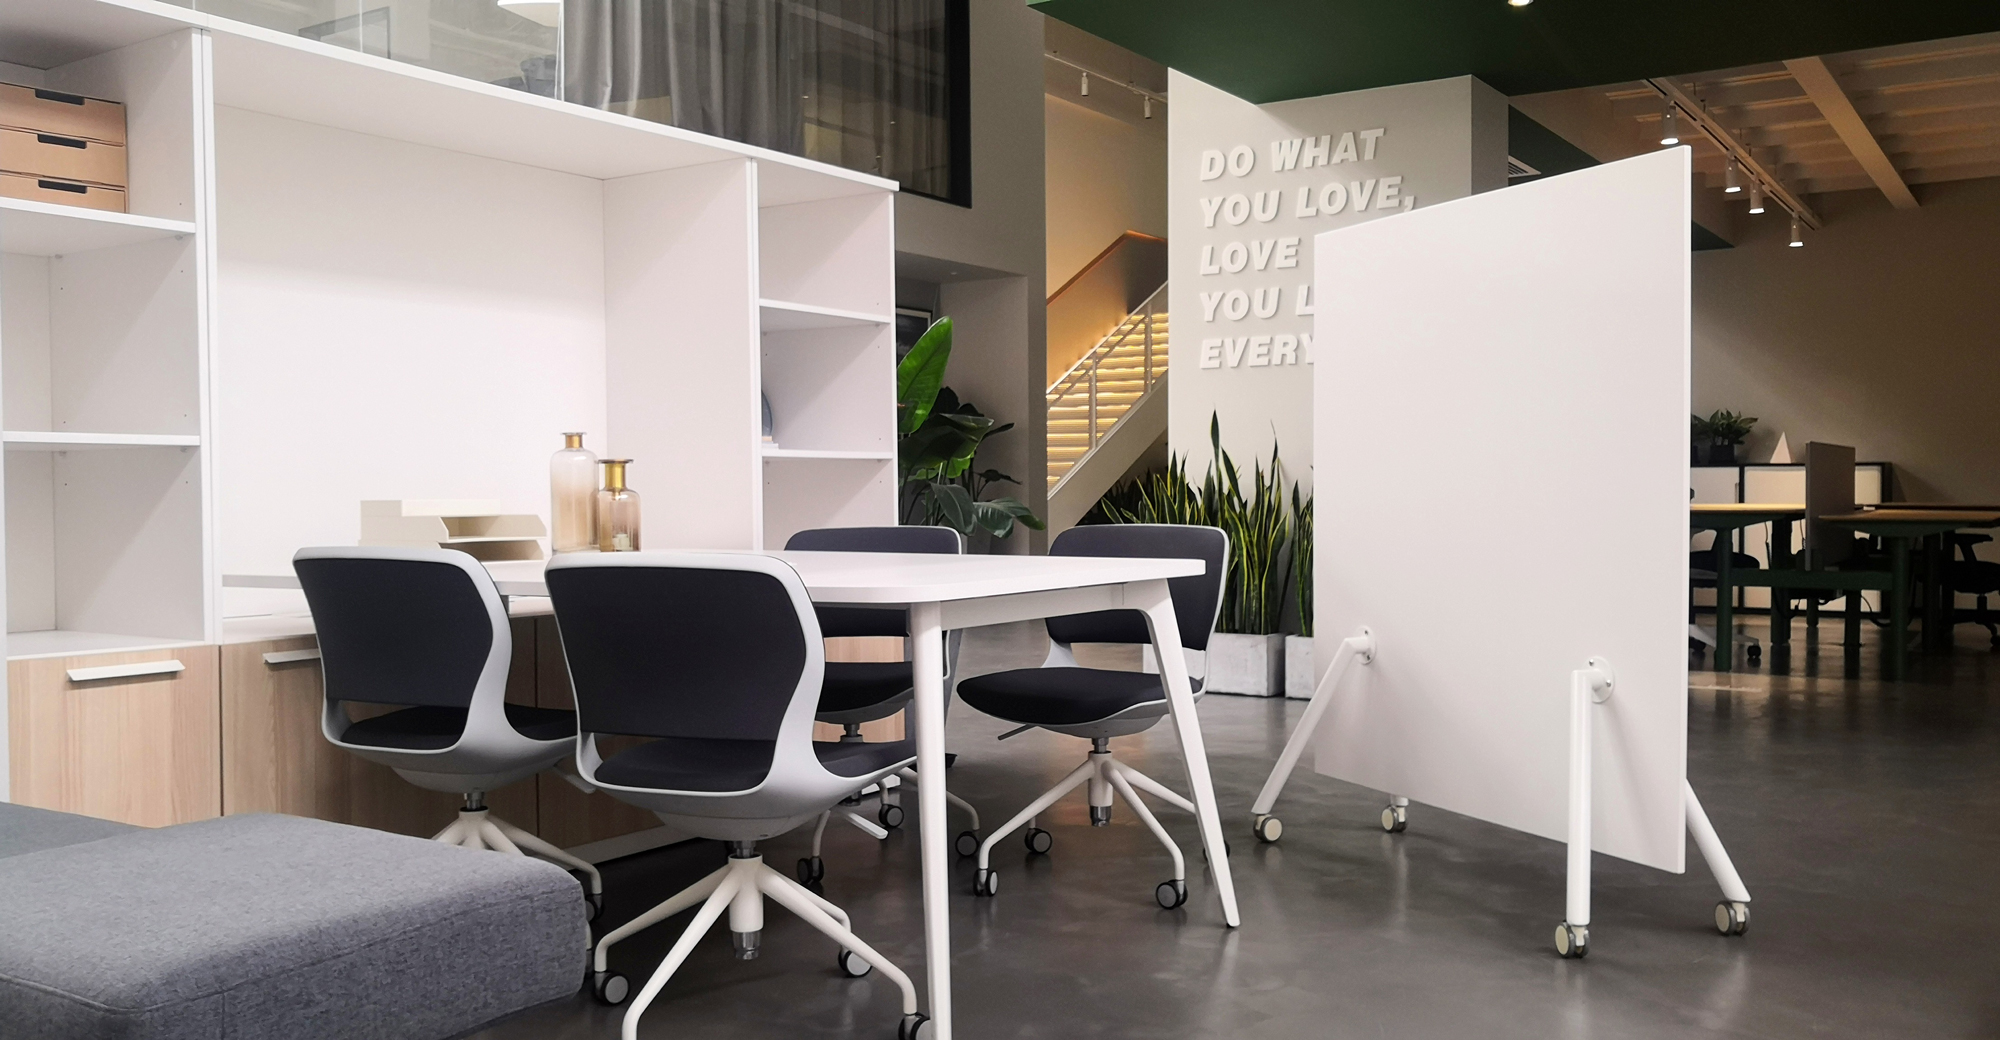 Image showcases Friant Shield panel creating space for an open meeting area